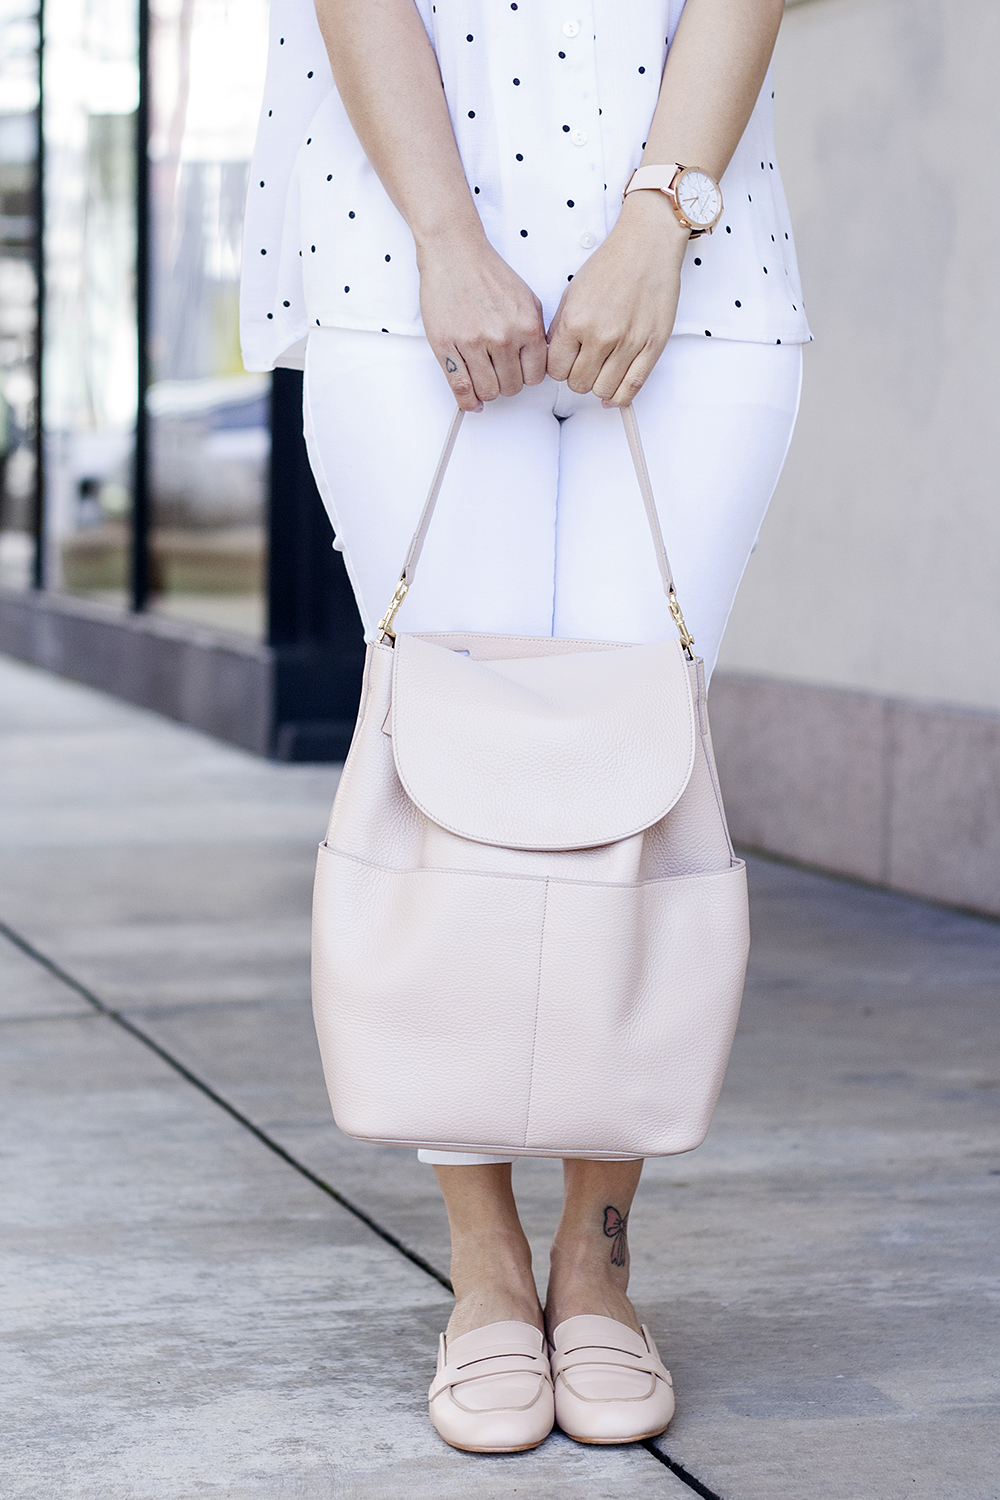 07cuyana-backpack-blush-white-sf-fashion-style